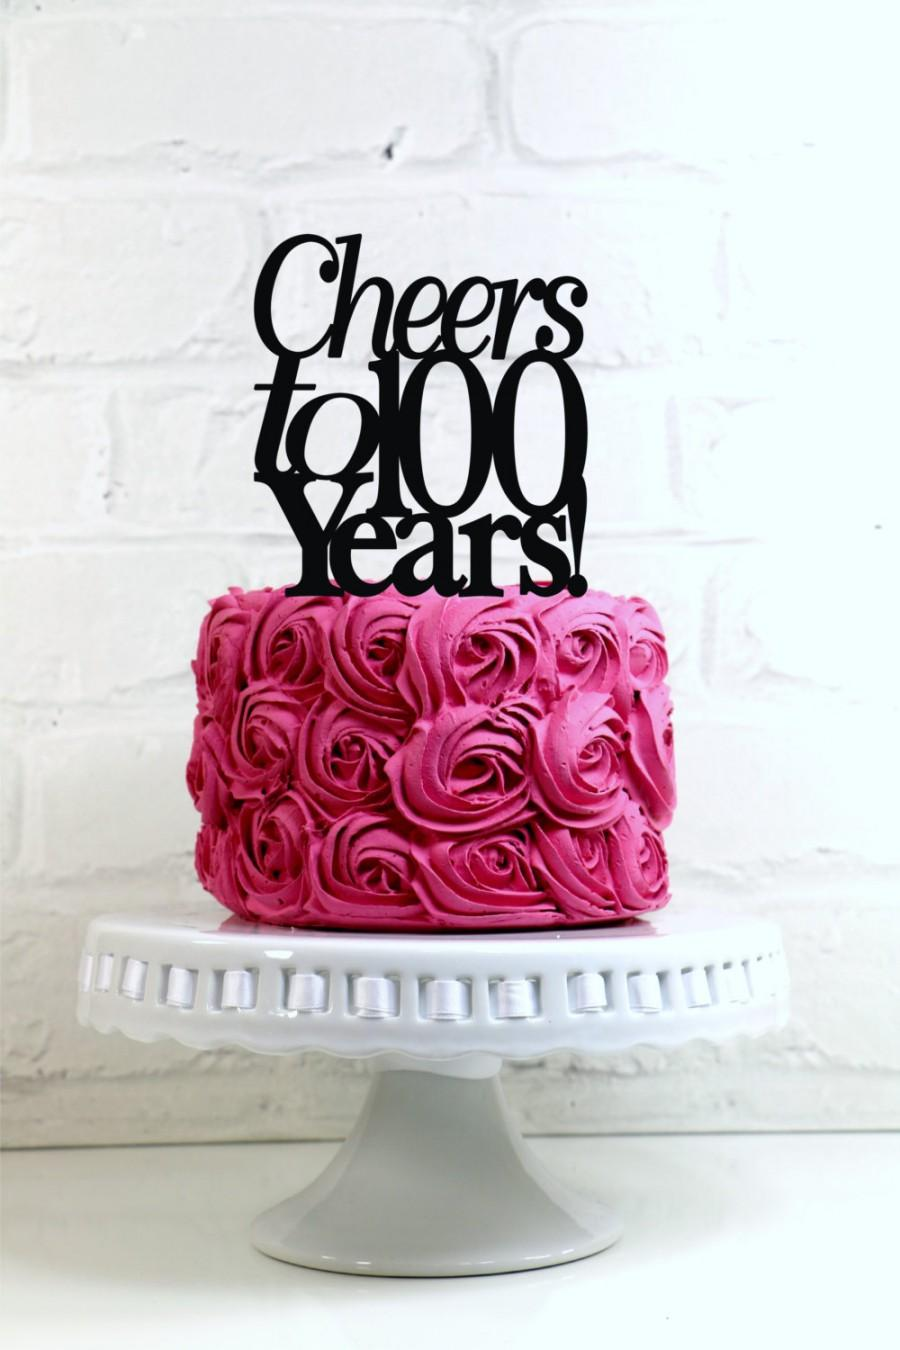 Cheers To 100 Years 100th Anniversary Or Birthday Cake Topper Sign